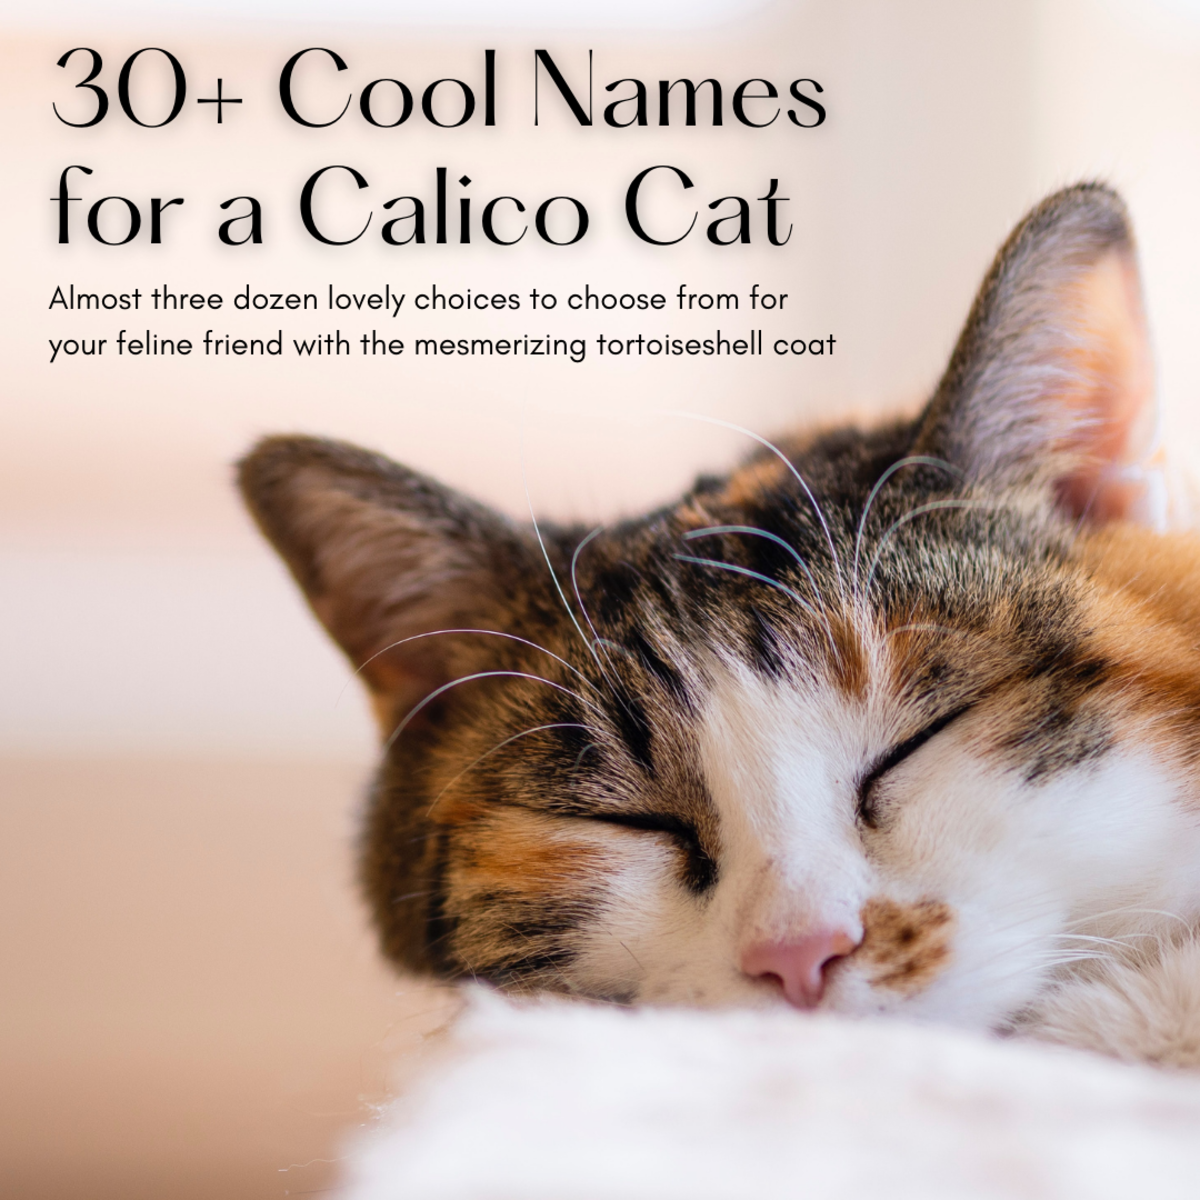 Take a look at almost three dozen wonderful names for your kitty with the calico coat.